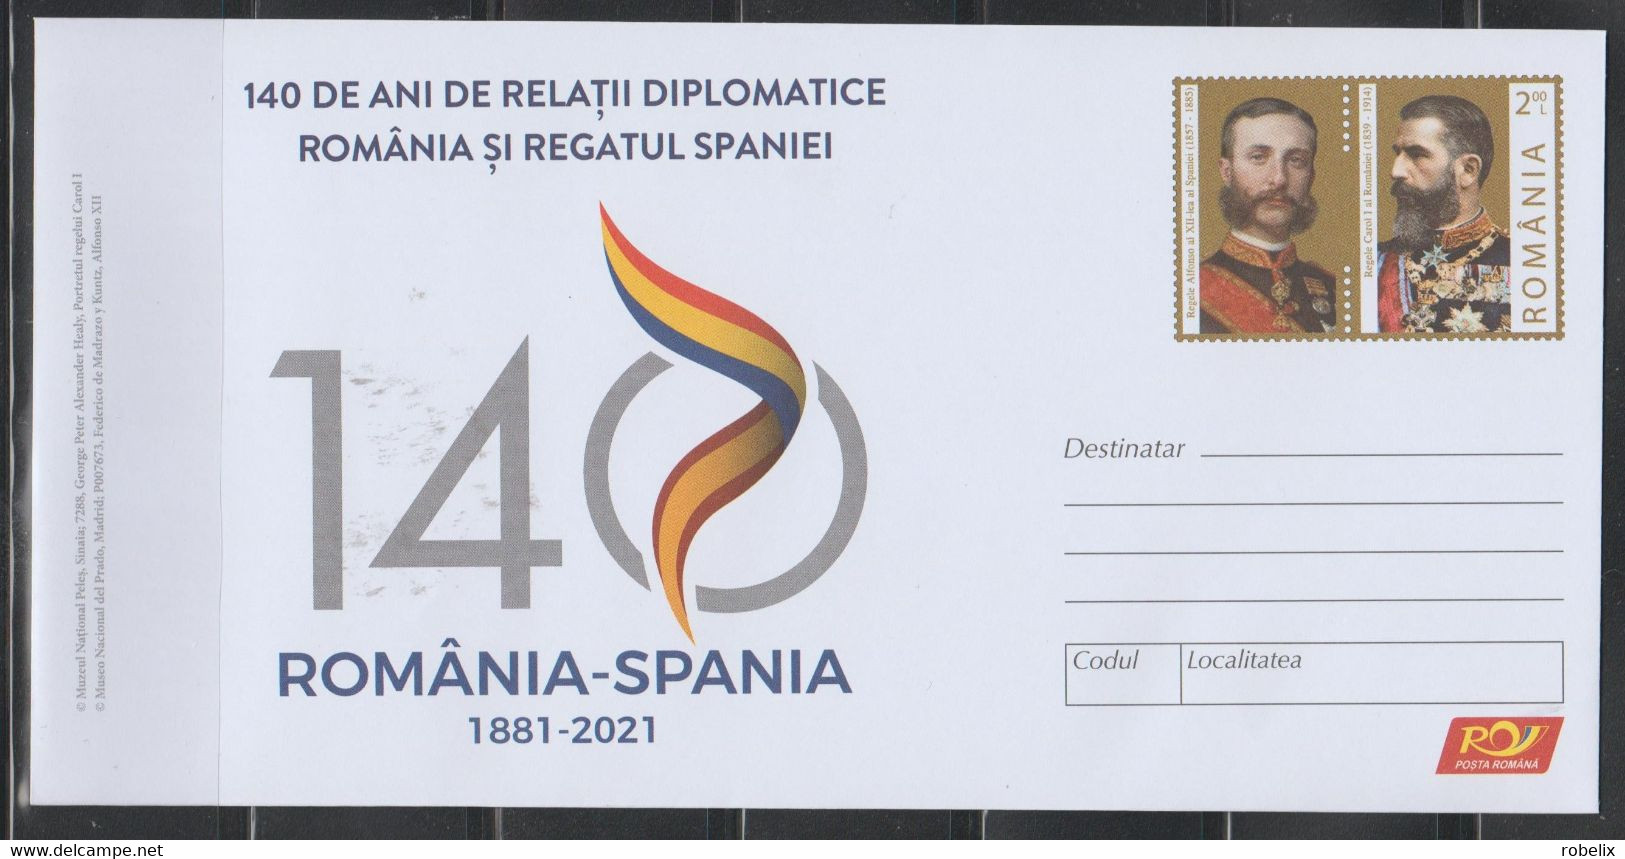 ROMANIA 2021 140 Years Diplomatic Relations Romania - Spain (1881-2021)  Cover Stationery Unused - Entiers Postaux